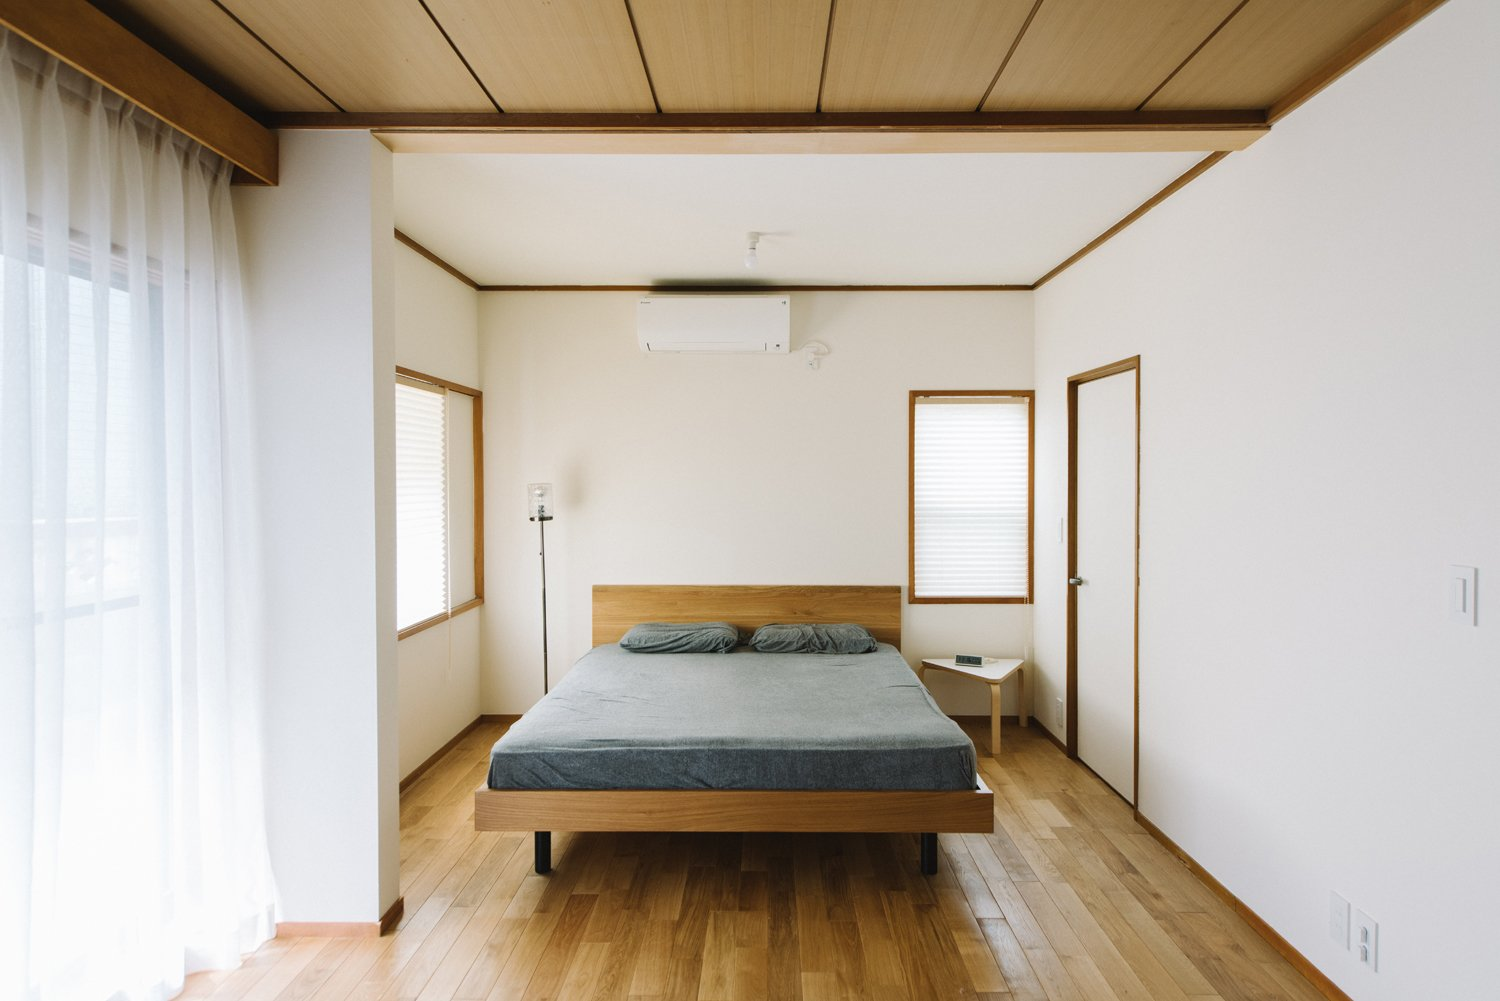 Photo 1 of 7 in House in Ogikubo by SNARK